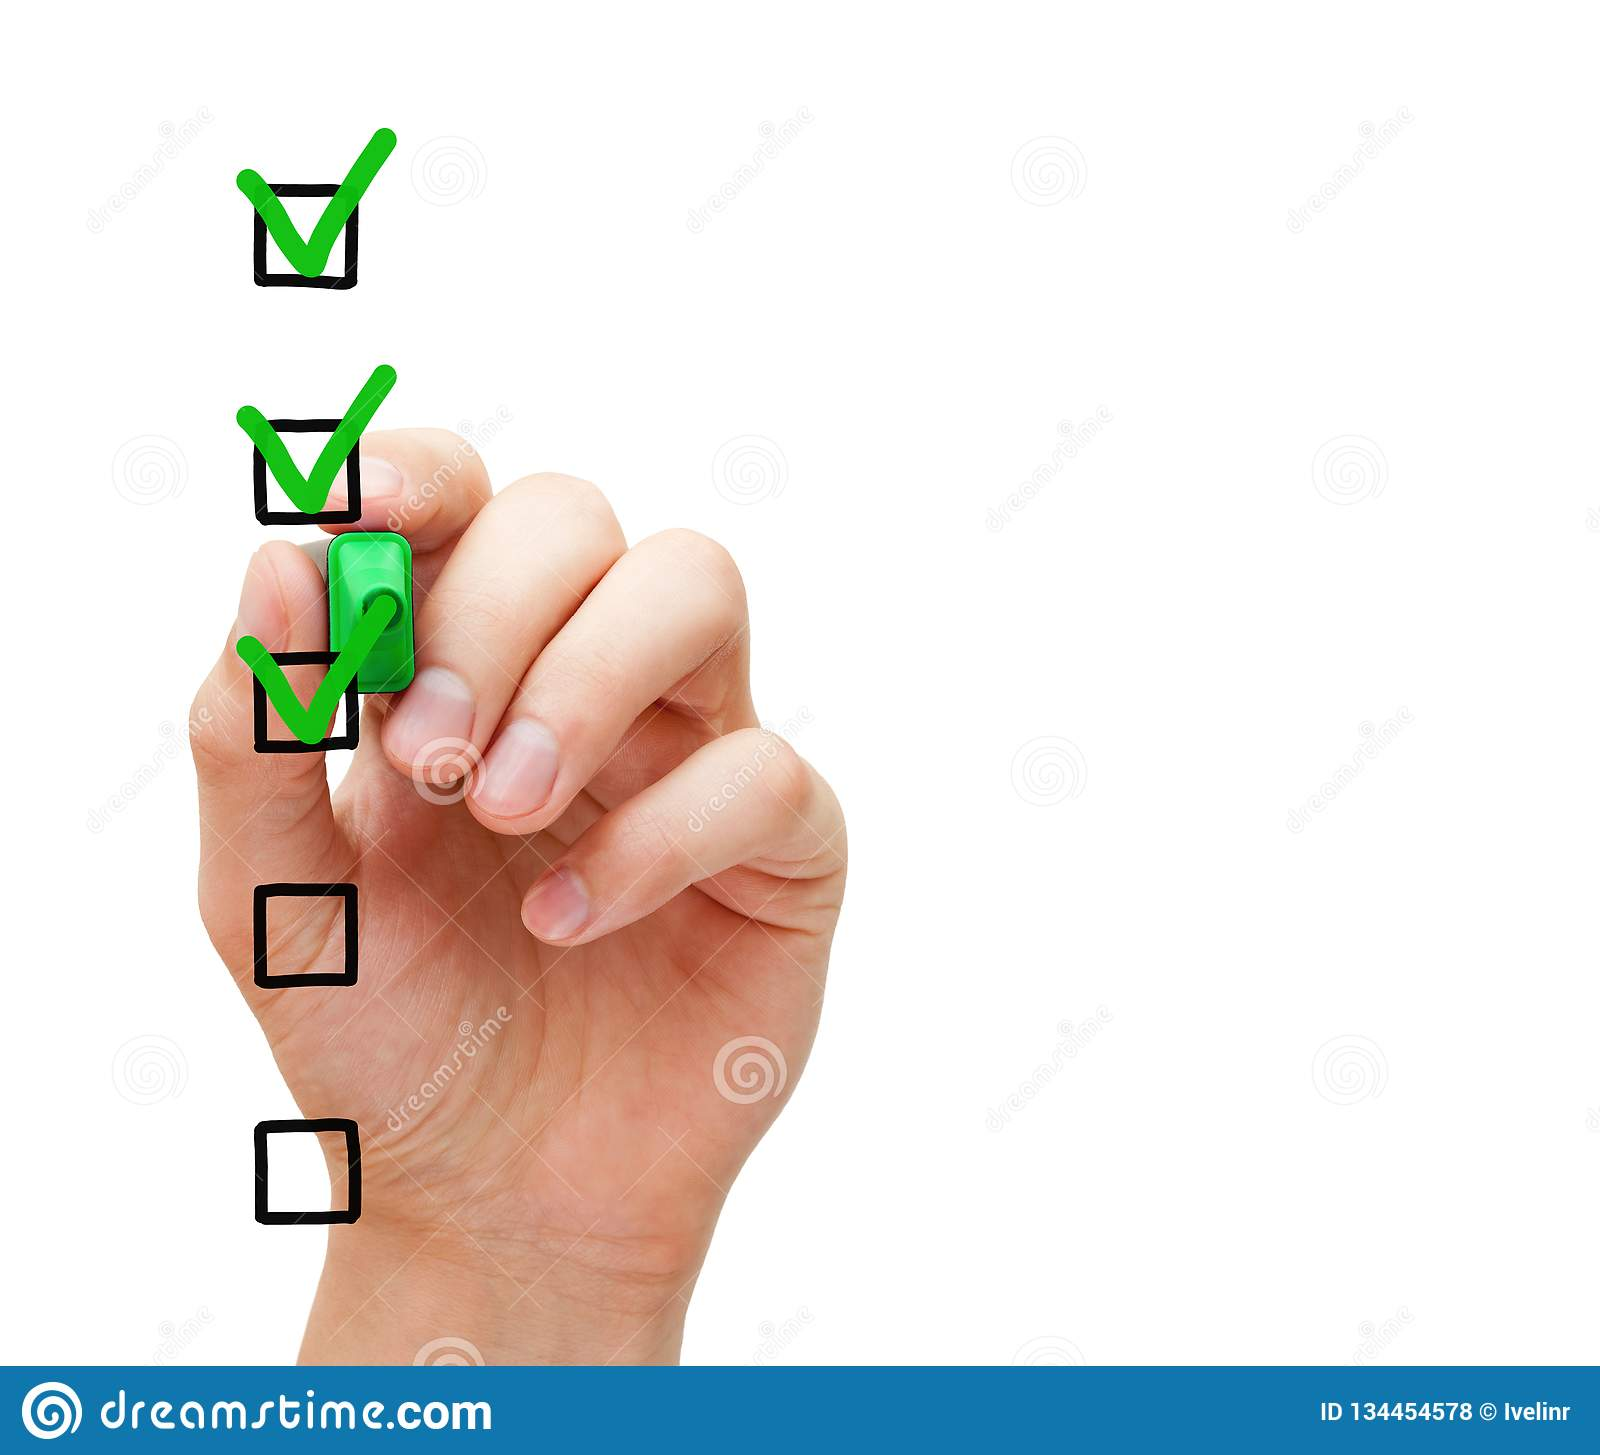 Blank Customer Service Survey Checklist Concept Stock Photo - Image